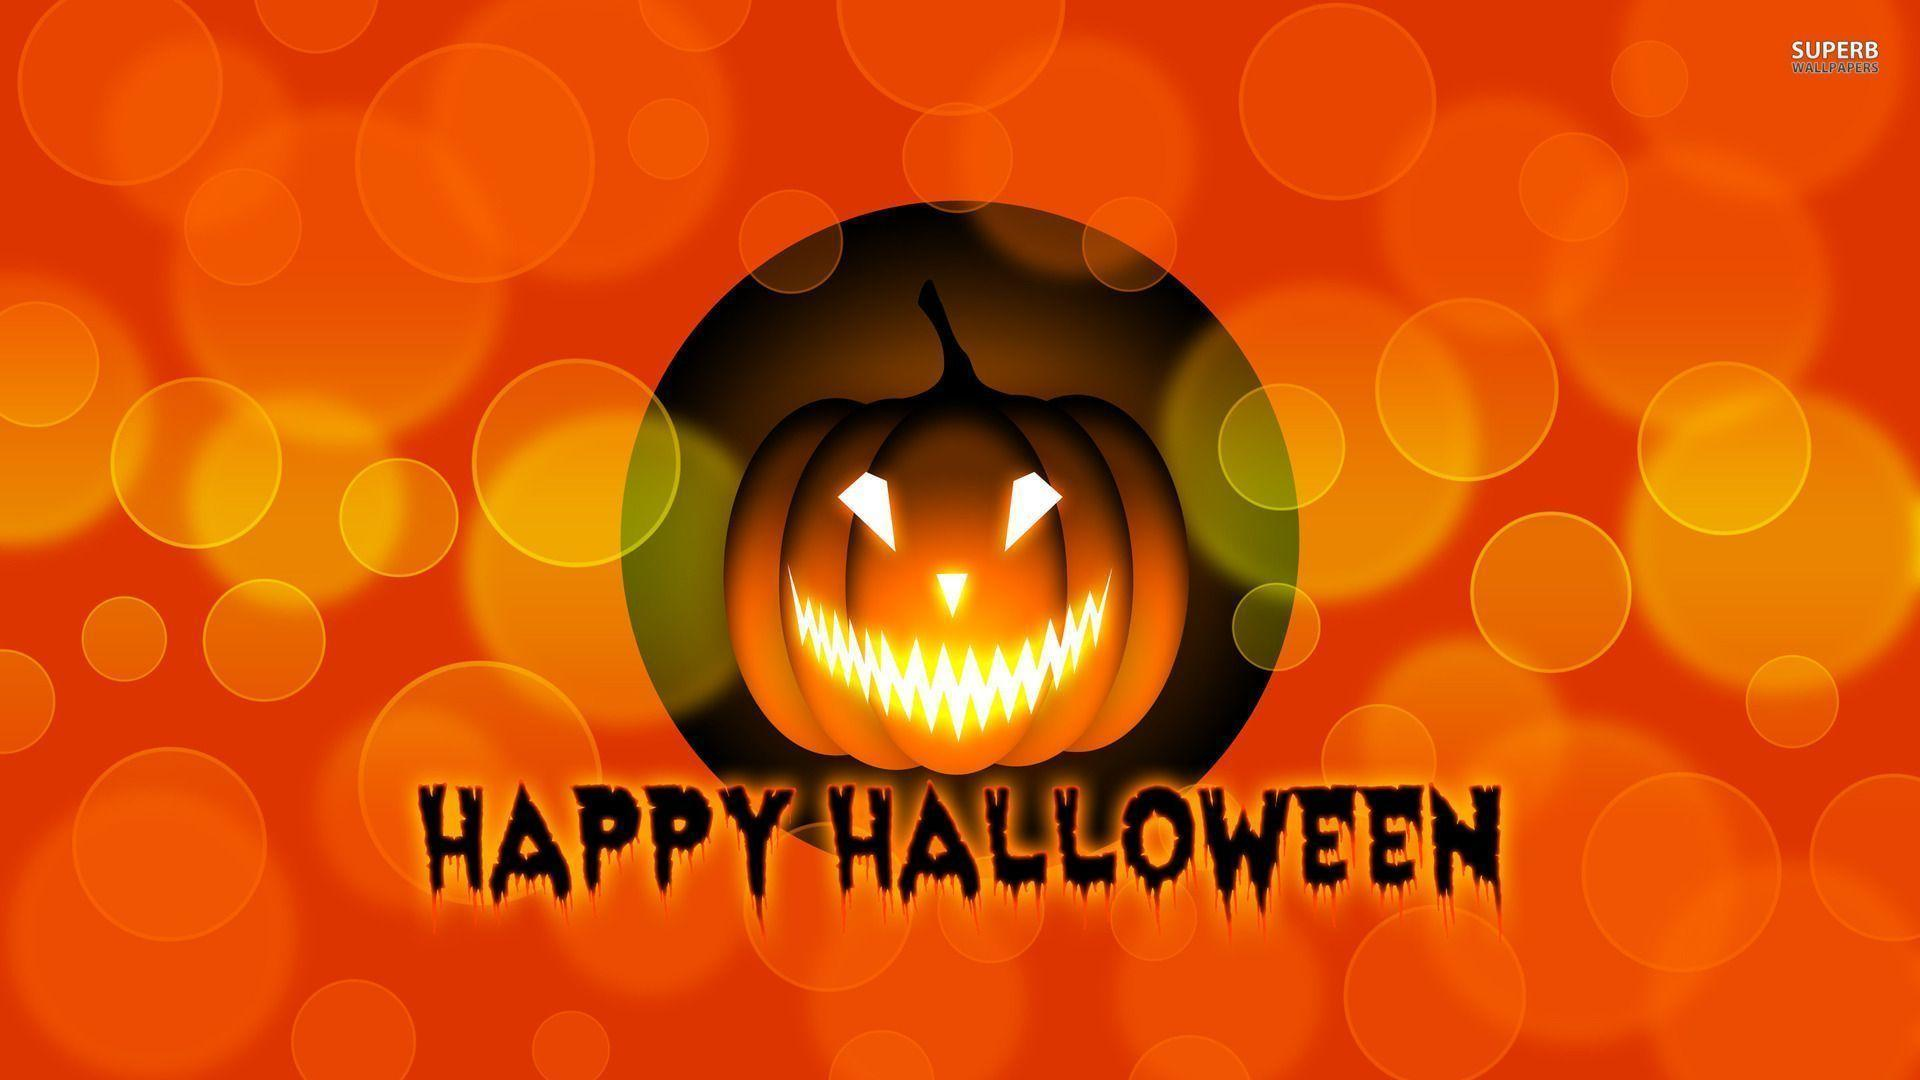 happy halloween background - photo #16